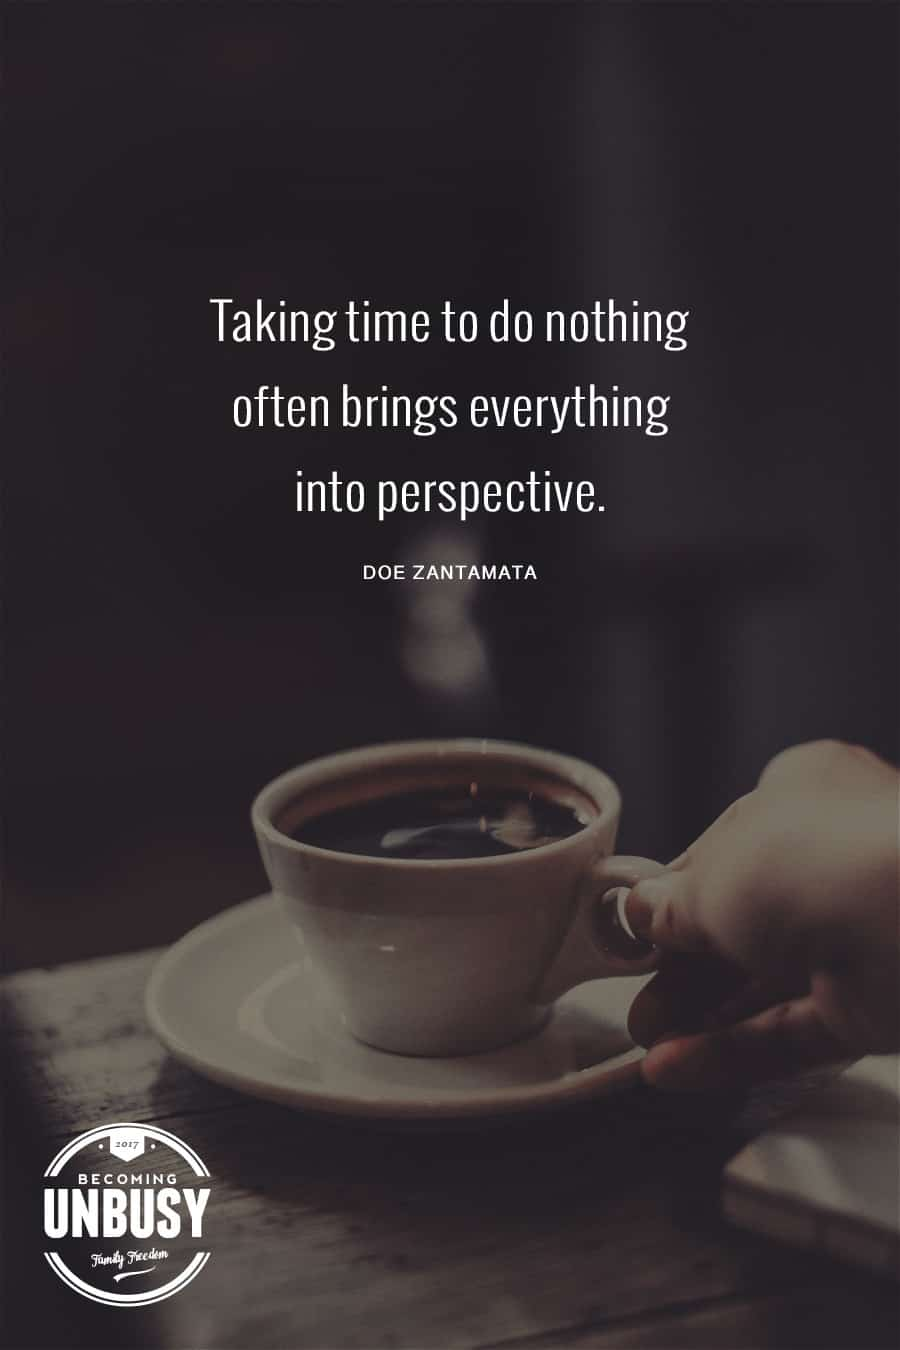 10 Good Morning Quotes - Taking time to do nothing often brings everything into perspective. #lifequotes #quotes #goodmorningquotes #coffeequotes *Start the day off right with these morning inspirational quotes. Love this good morning motivation!